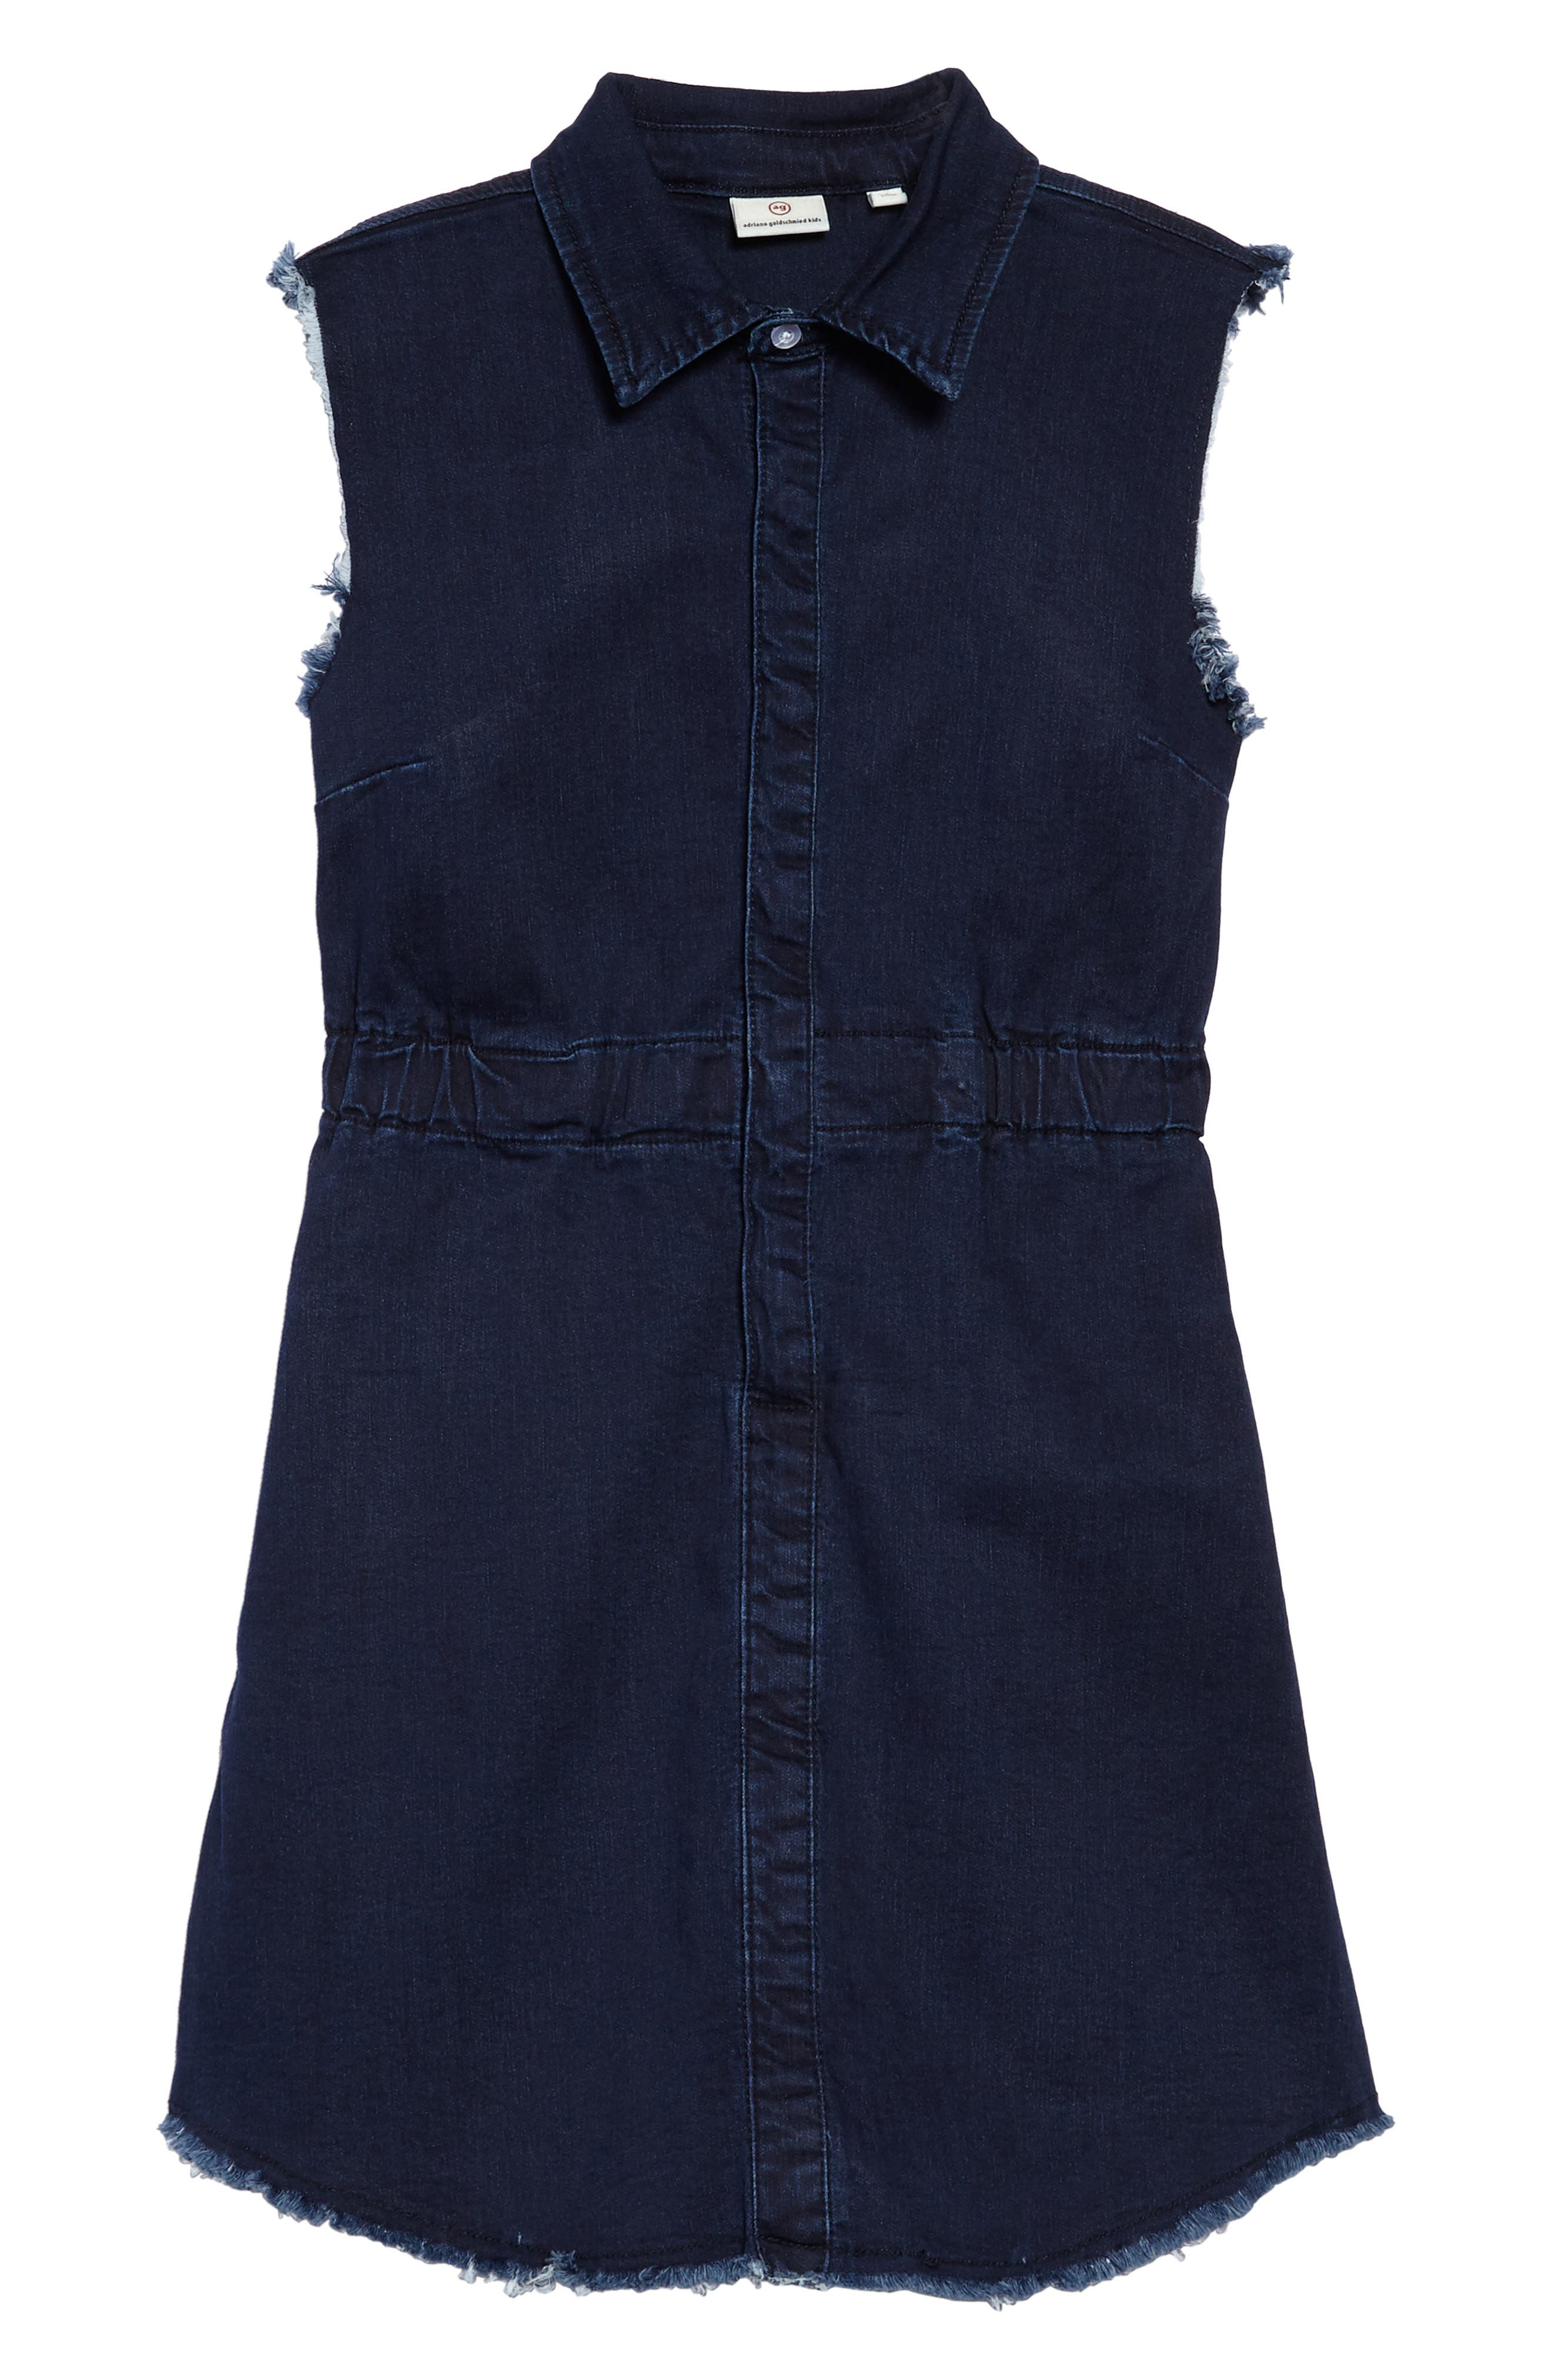 Main Image - ag adriano goldschmied kids Rosanna Chambray Dress (Big Girls)